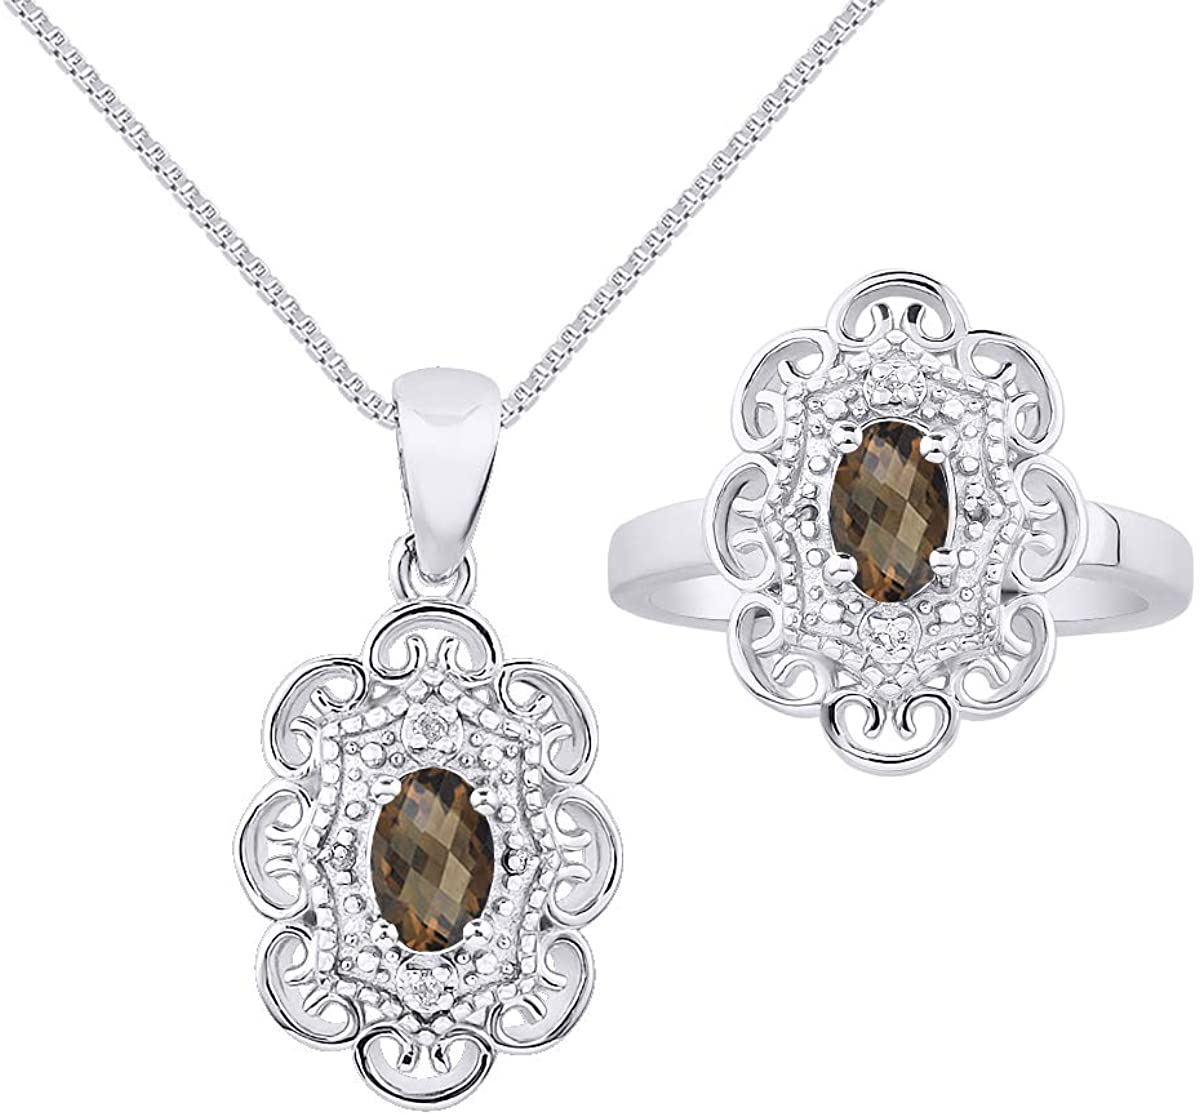 RYLOS Floral Pattern Halo Pendant Necklace & Matching Ring - Oval Shape Gemstone & Genuine Sparkling Diamonds in Sterling Silver .925-6X4MM Color Stone With 18 Chain